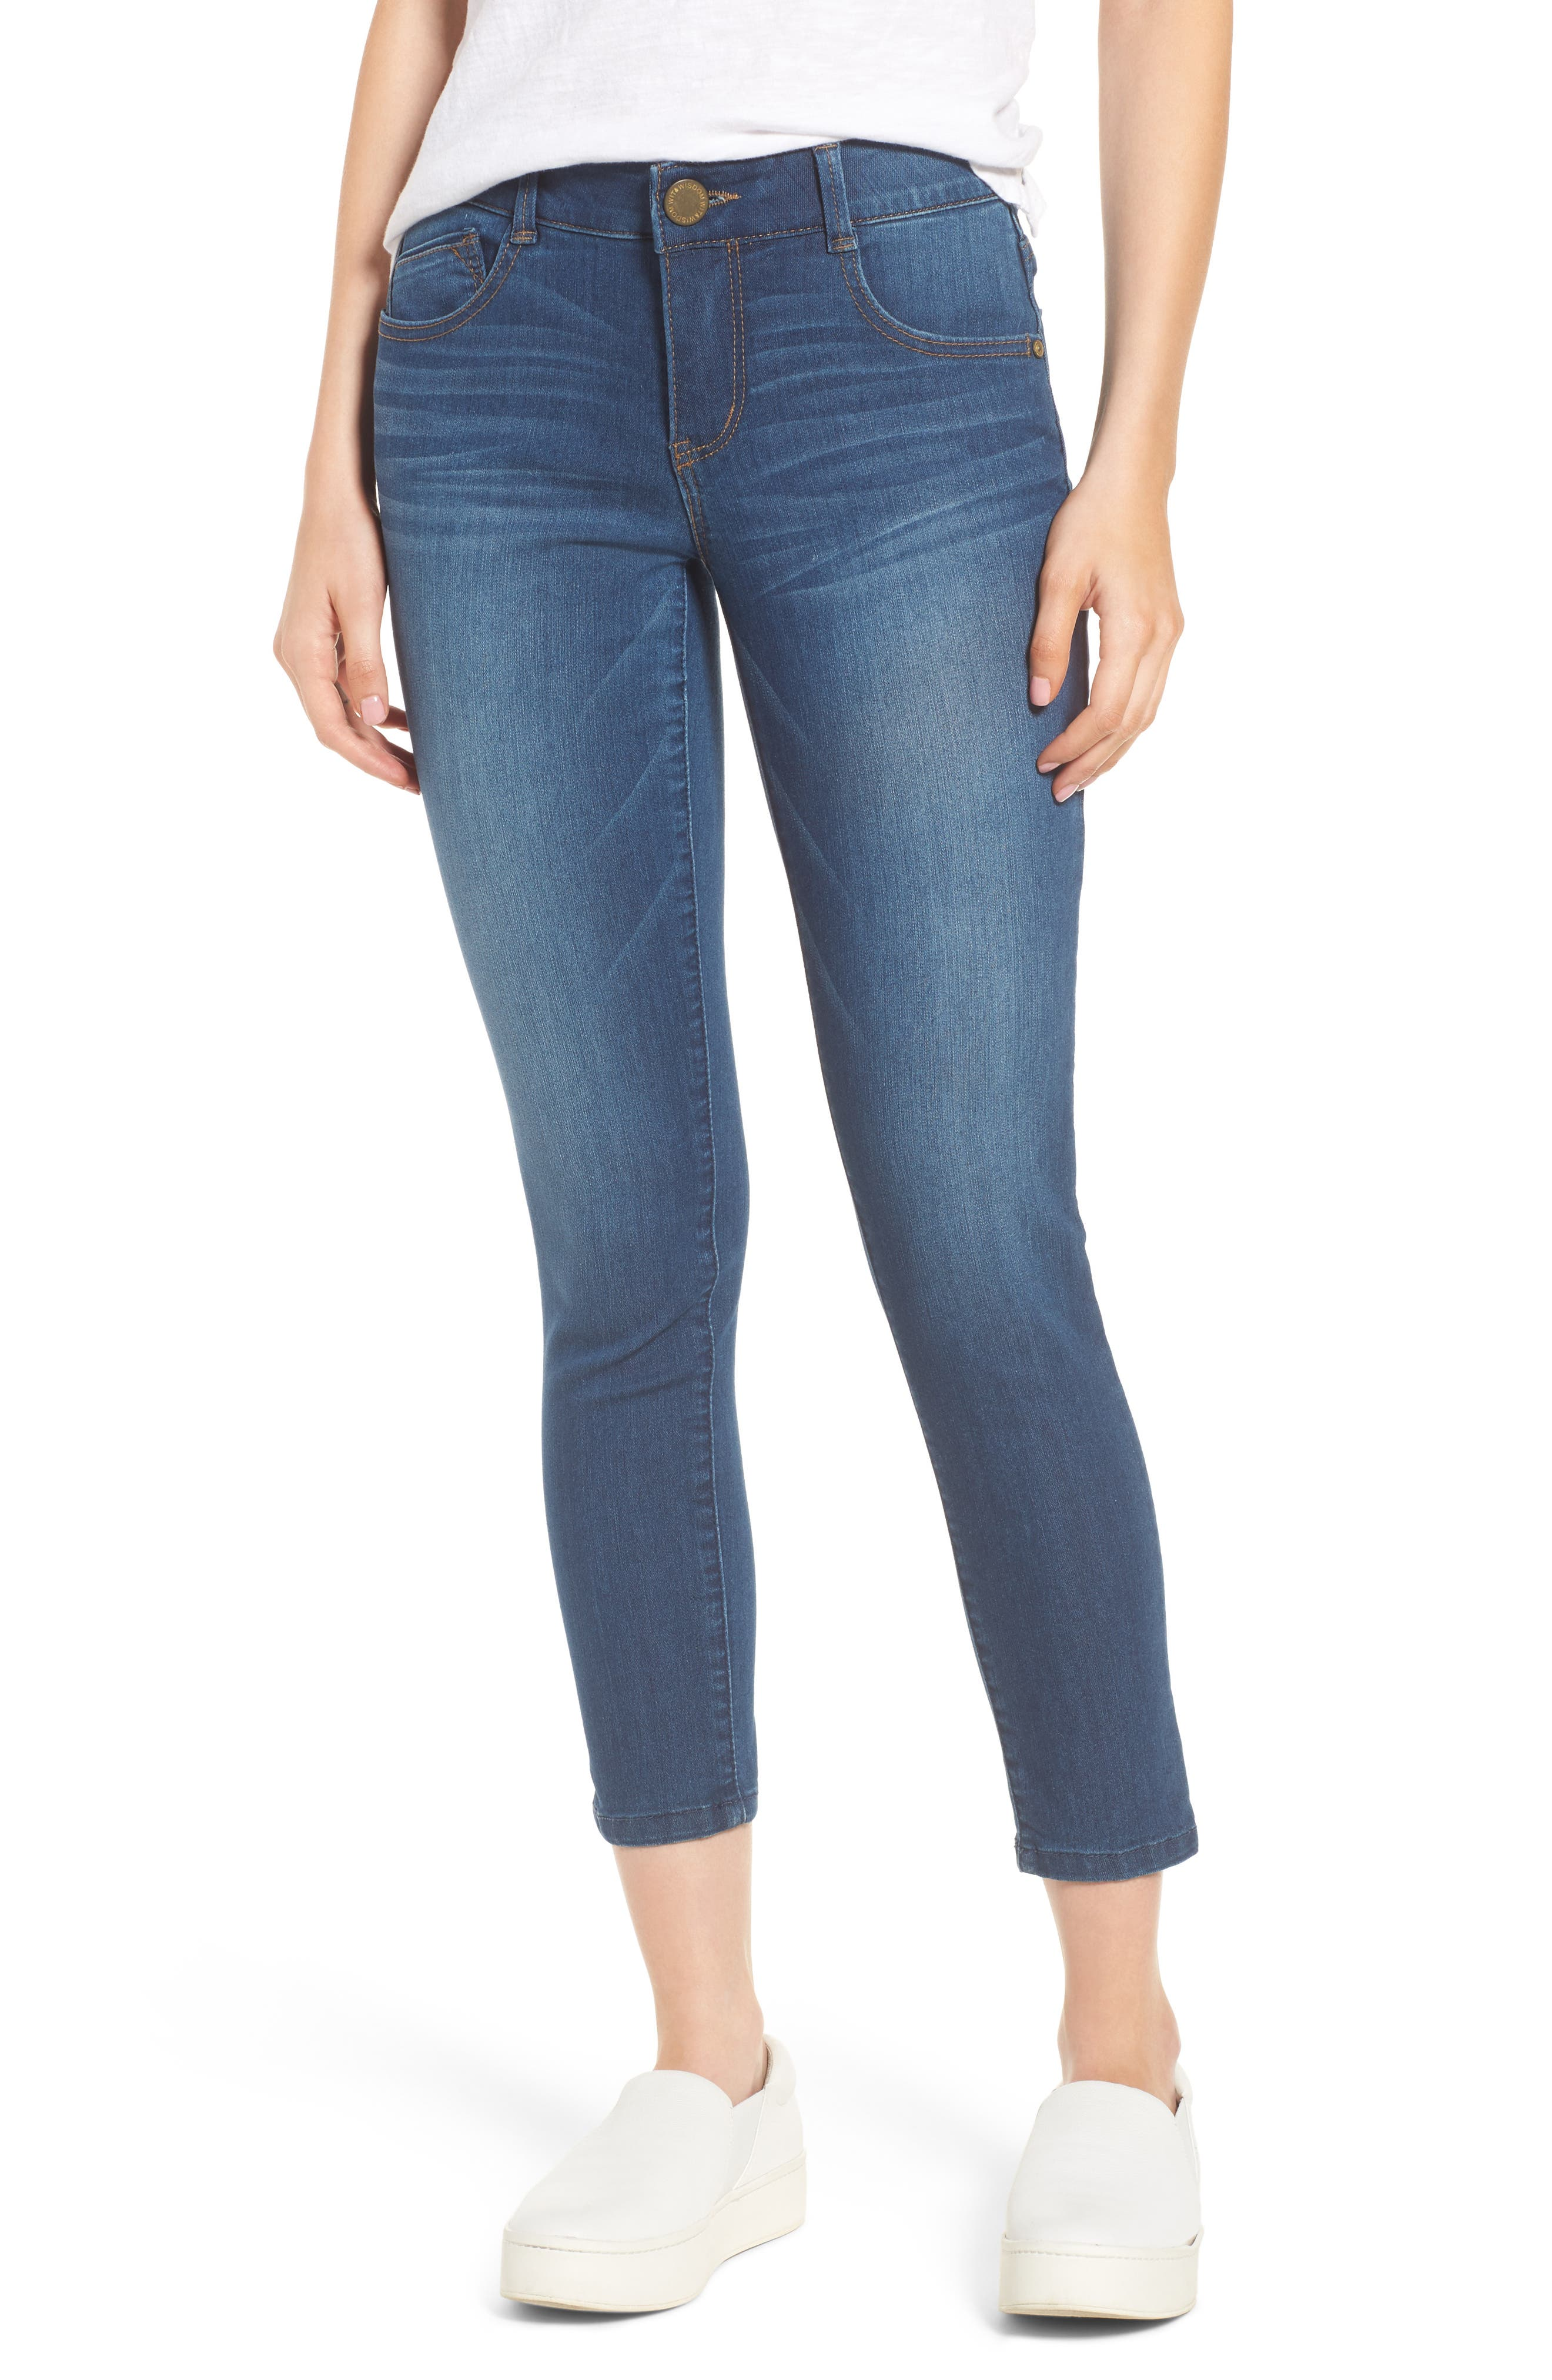 Main Image - Wit & Wisdom Ab-solution Ankle Skimmer Jeans (Nordstrom Exclusive)